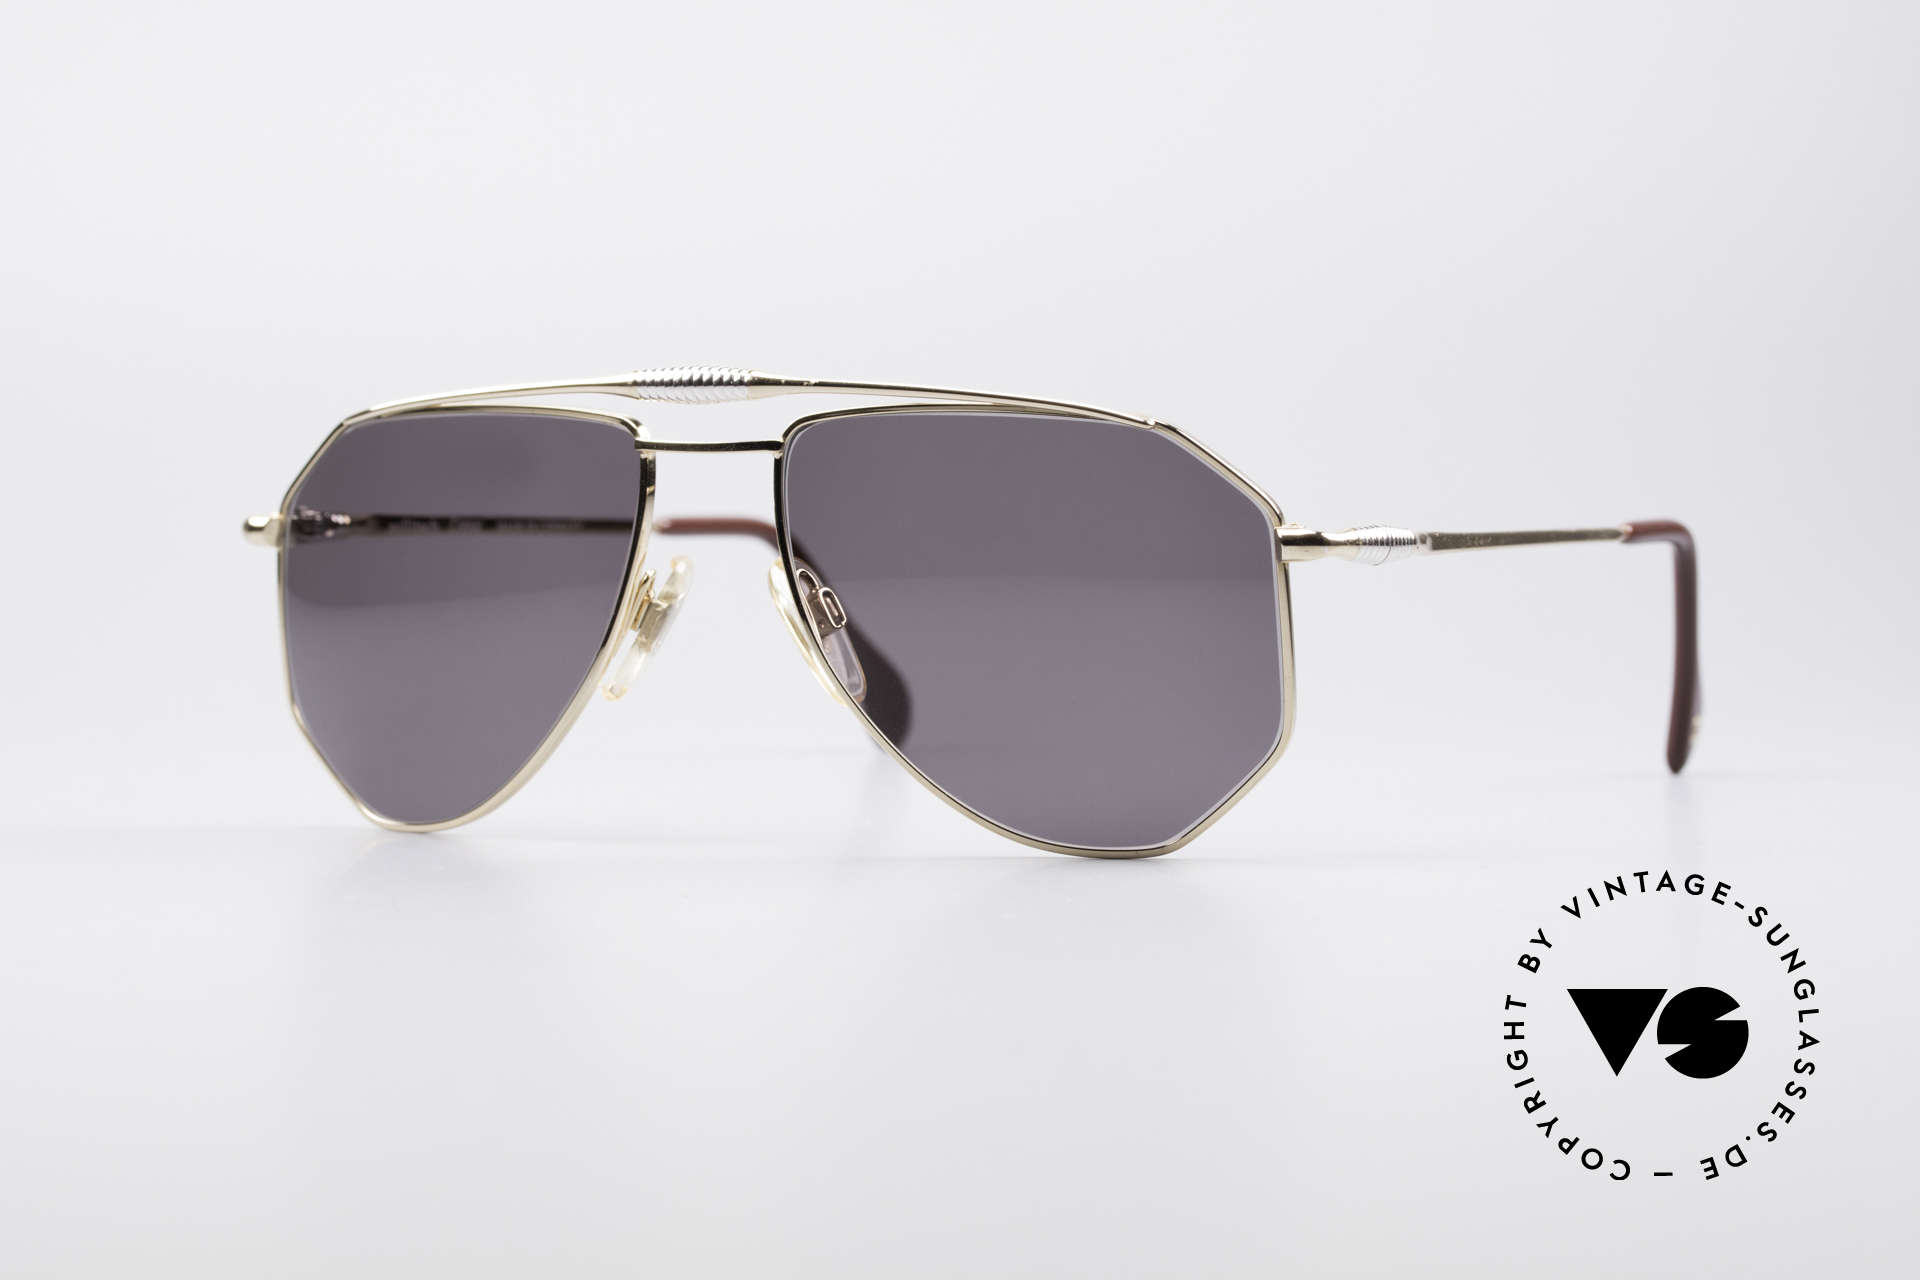 Zollitsch Cadre 120 Medium 80's Aviator Shades, vintage Zollitsch designer sunglasses from the late 80's, Made for Men